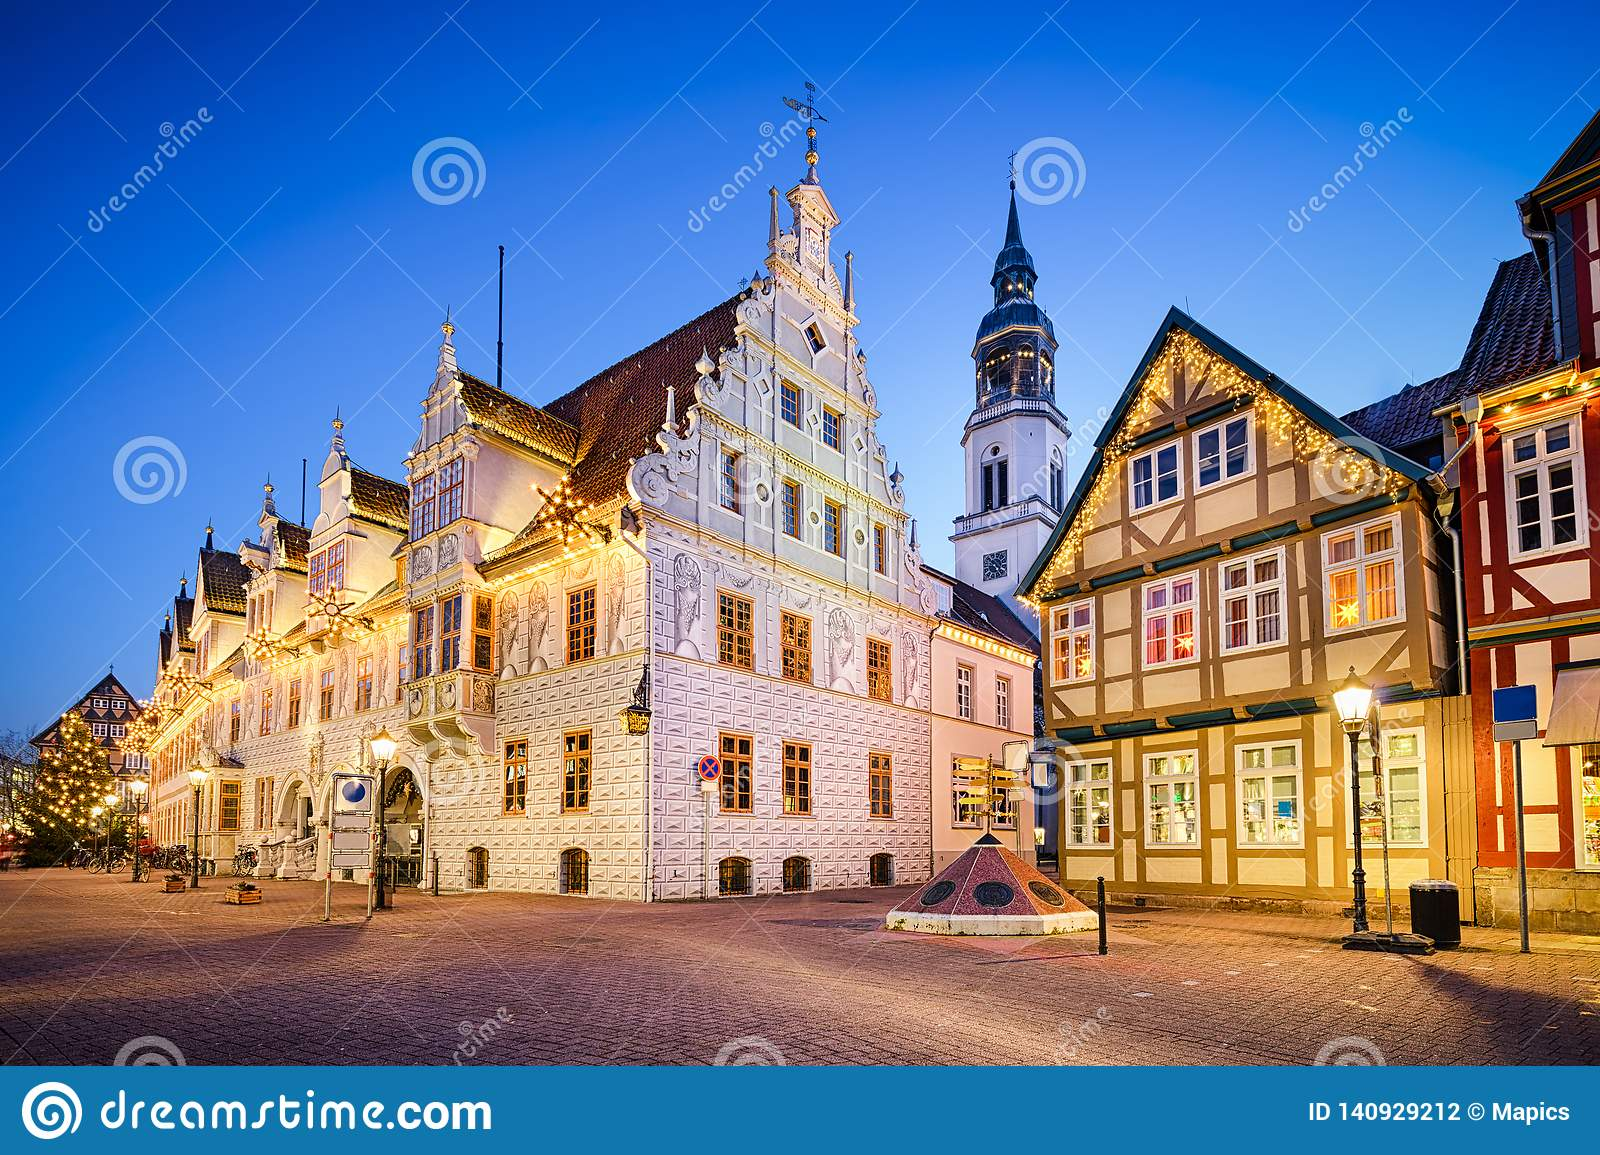 Weihnachtsessen Celle.City Hall Of Celle Germany Stock Photo Image Of Weihnachten